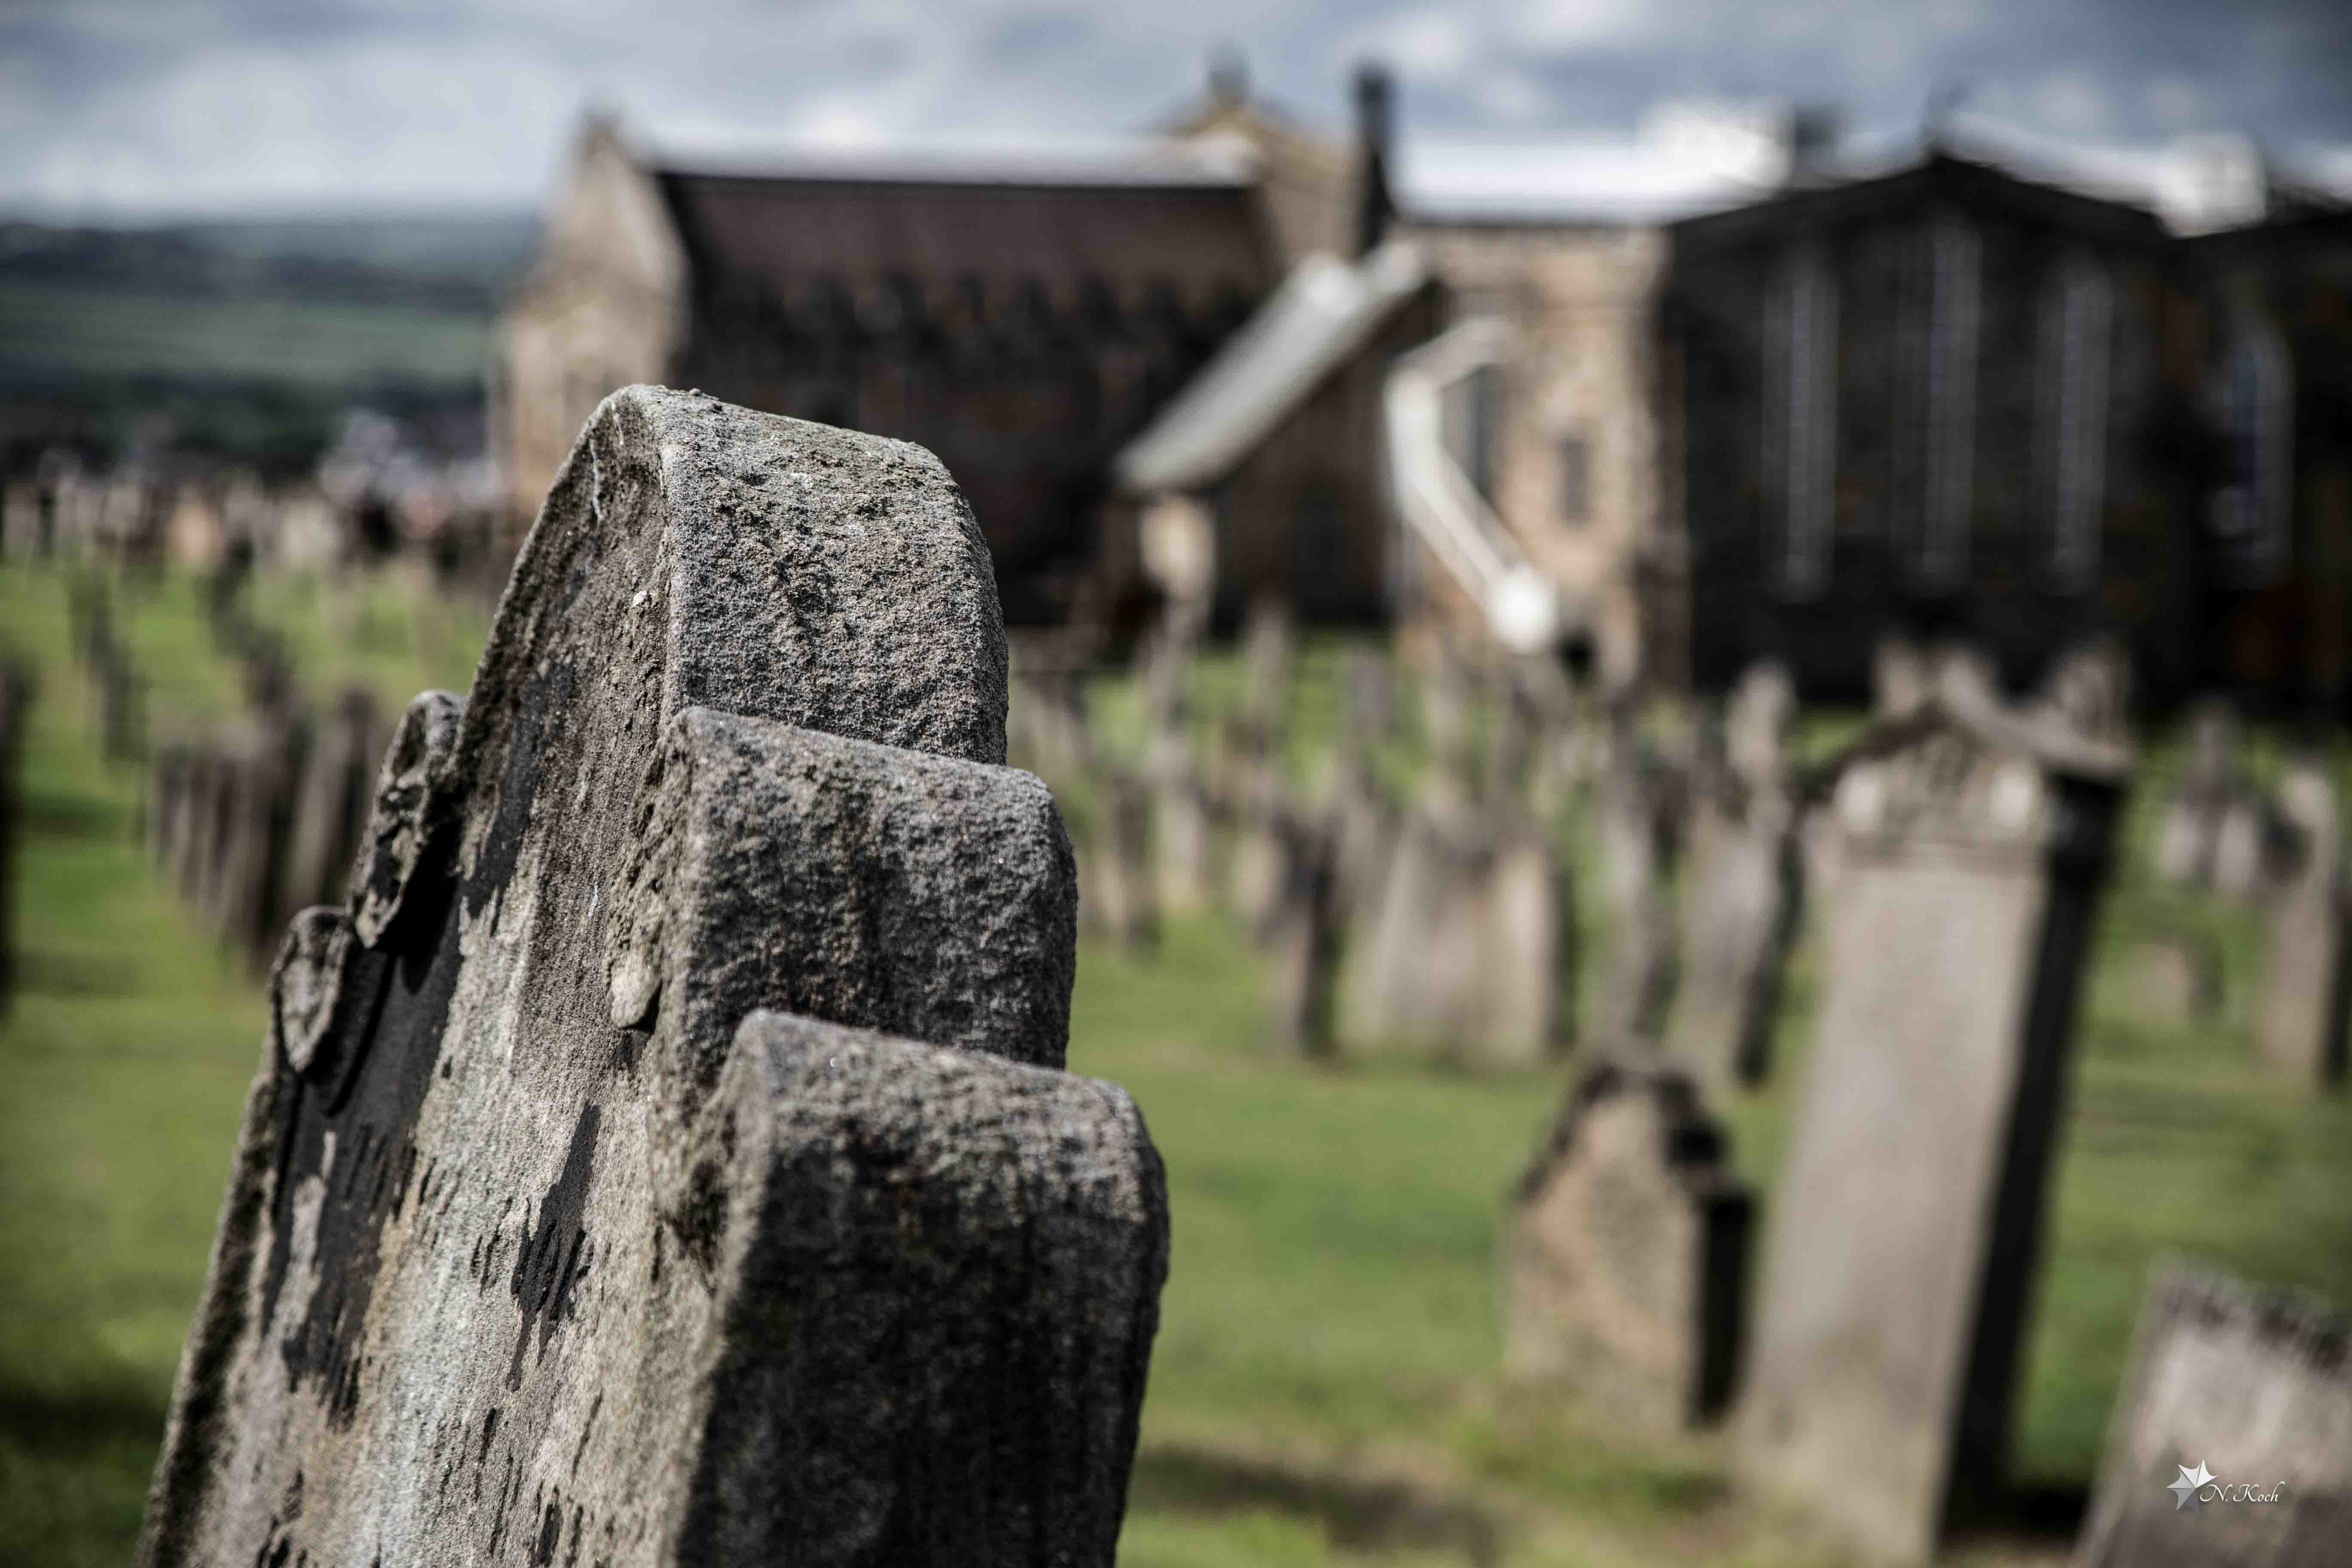 2015, Whitby | The cemetery of Whitby